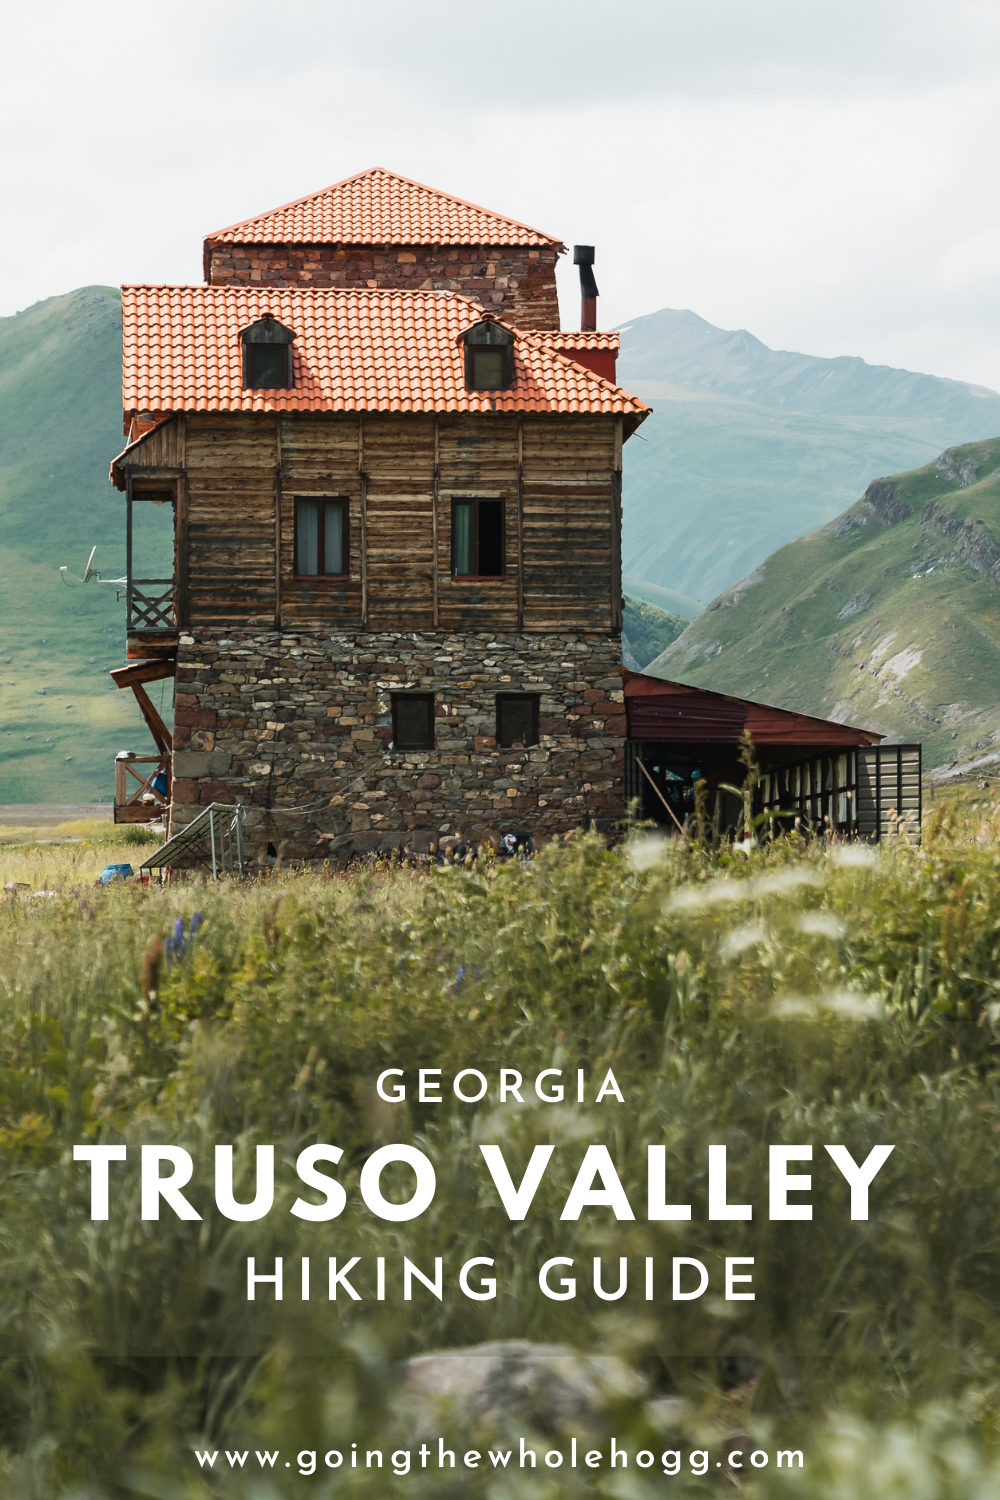 Truso Valley Hiking Guide